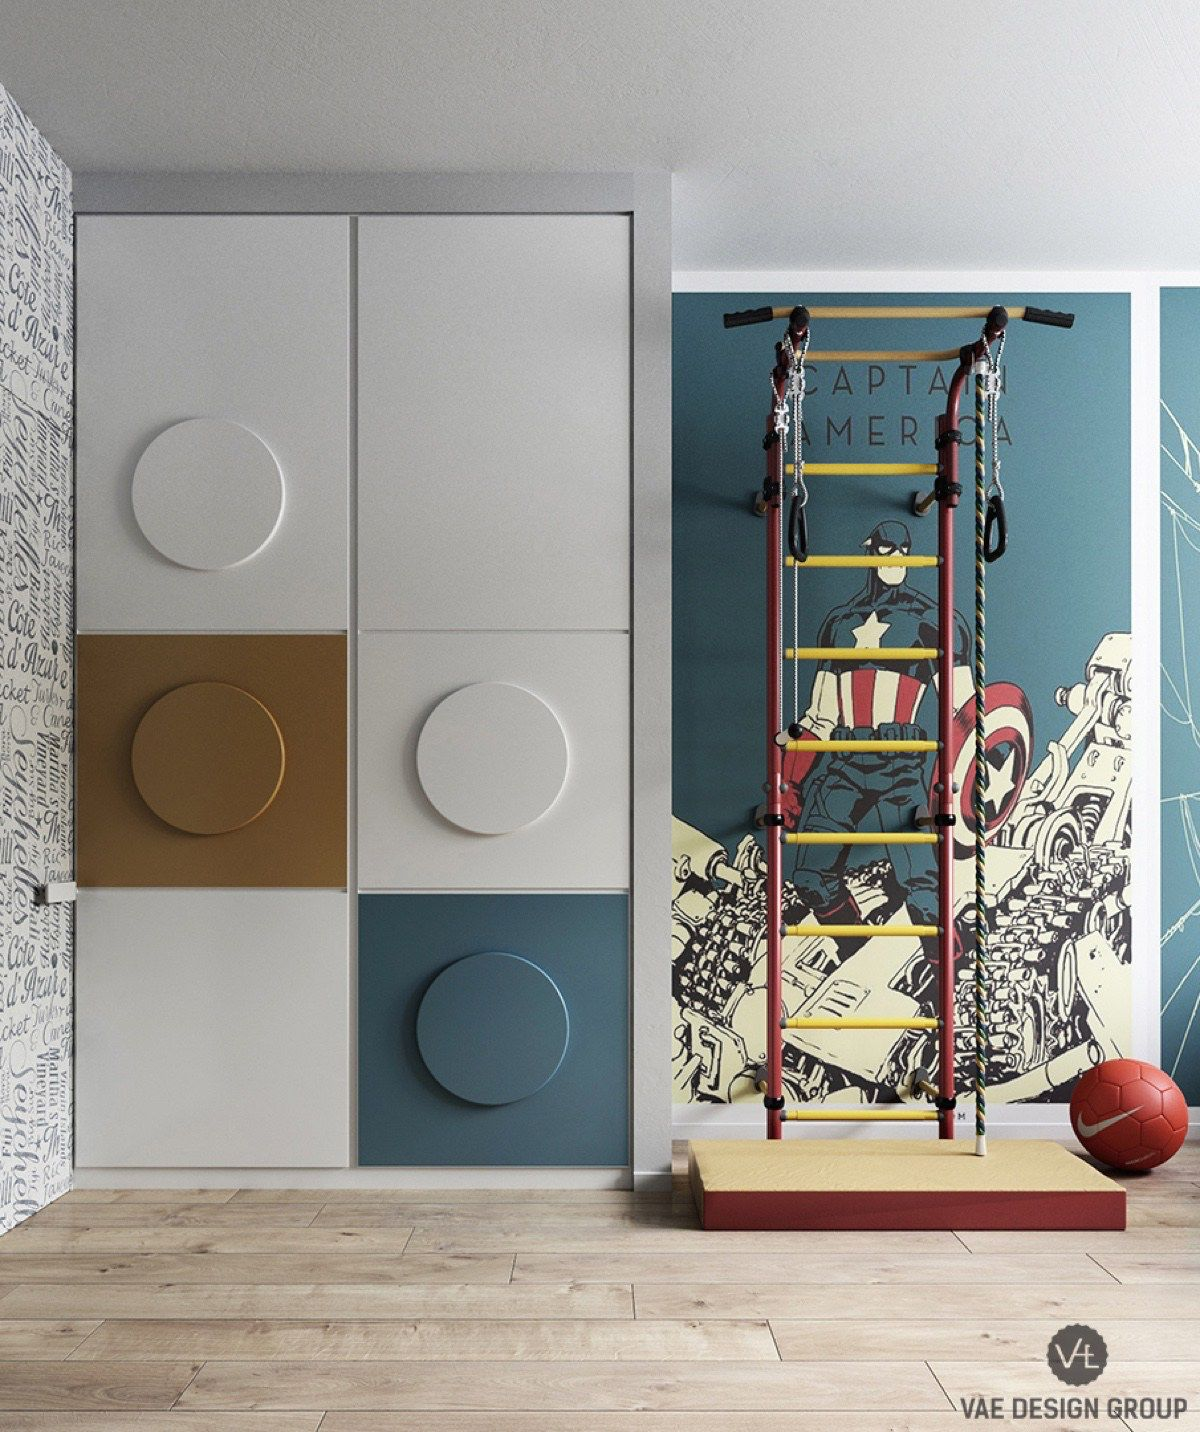 The kids' bedroom and study injects more play. Lego-esque circles feature on cupboard walls and desk chairs in mustard and teal, tones bright but reserved enough for an office. Twin inlets framed by stone allow Batman and Superman feature walls to battle it out, while cross-matching duvet covers fit rather than match. Under-bed cabinetry hides away the toys.